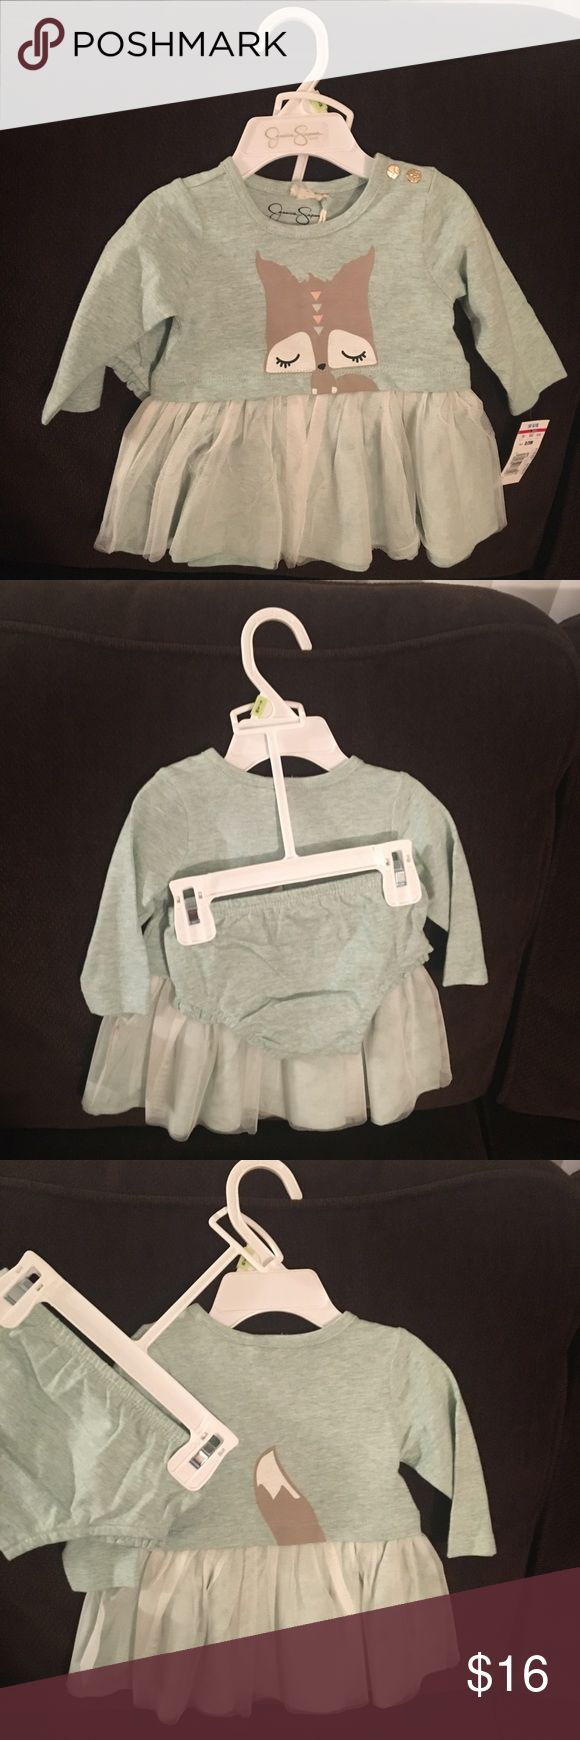 Jessica Simpson baby girl dress sz 0-3mo Jessica Simpson long sleeve baby girl dress with matching diaper cover size 0-3 months. Brand new with tags. Currently selling lots of other baby and toddler clothes. Willing to bundle items. Jessica Simpson Dresses